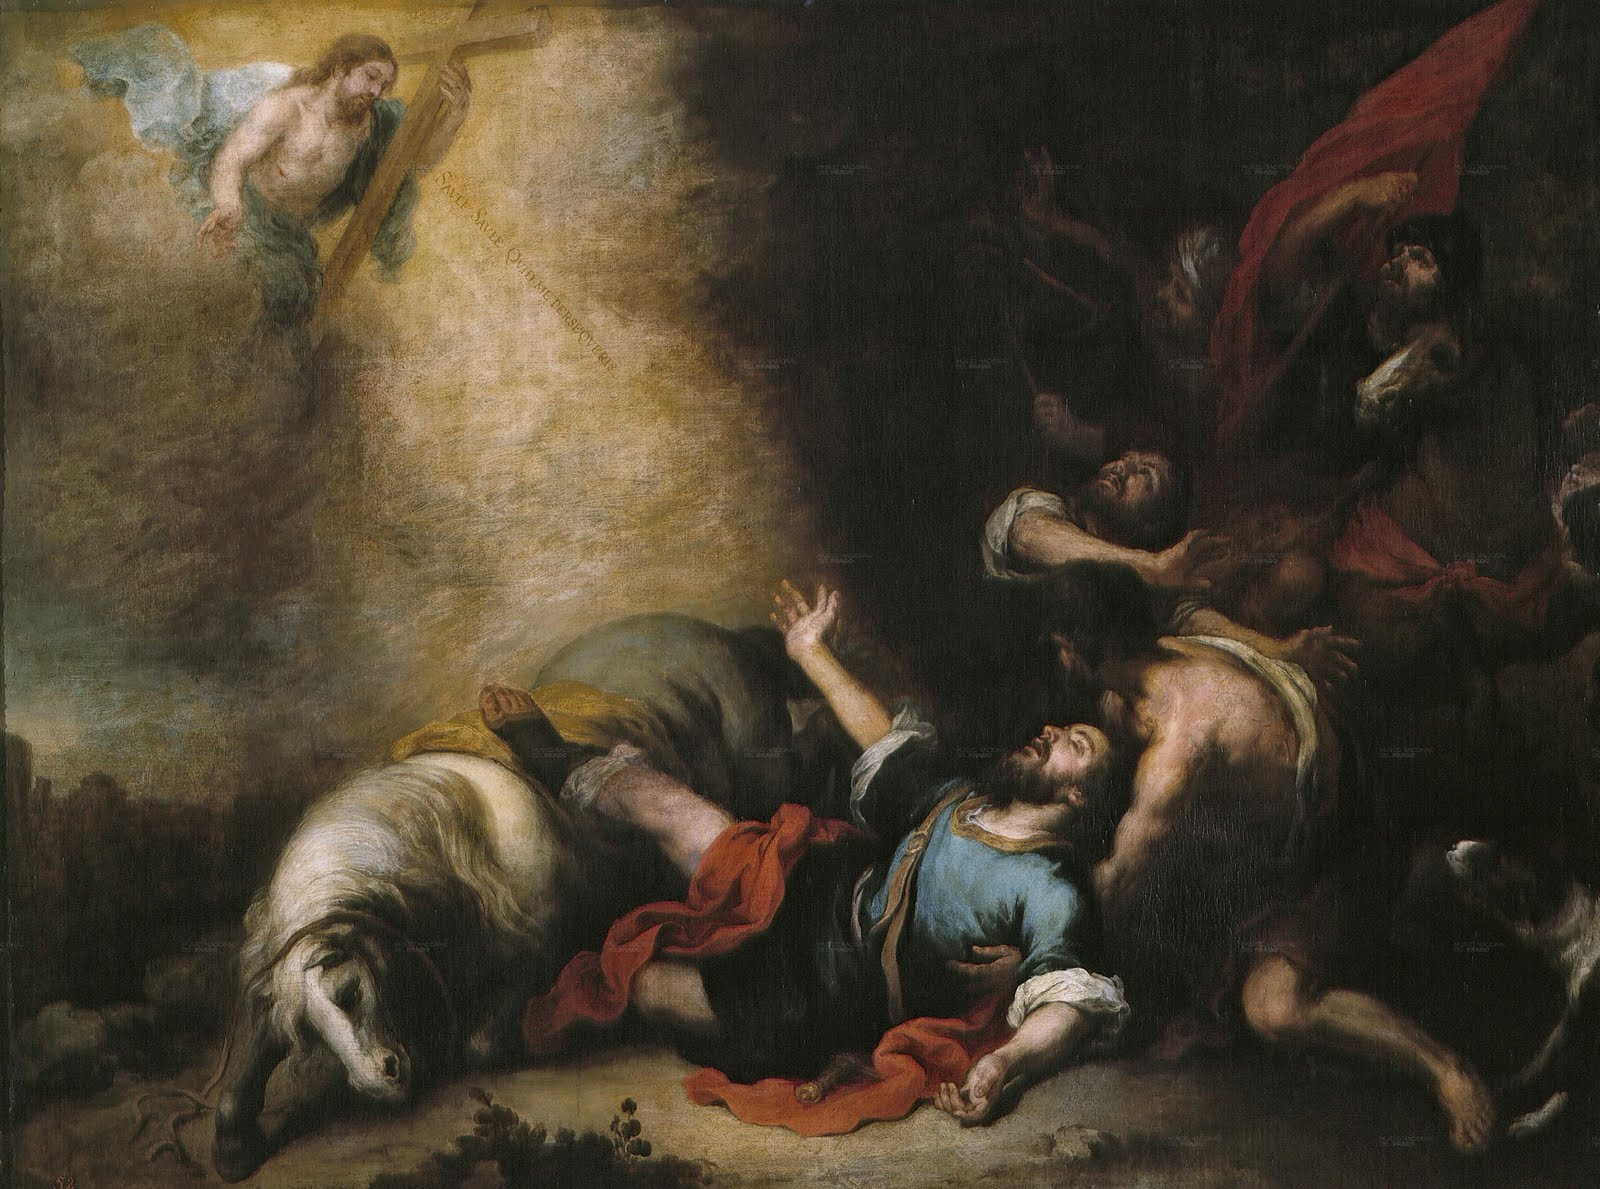 The Conversion Of Saint Paul by Bartolome Esteban Murillo